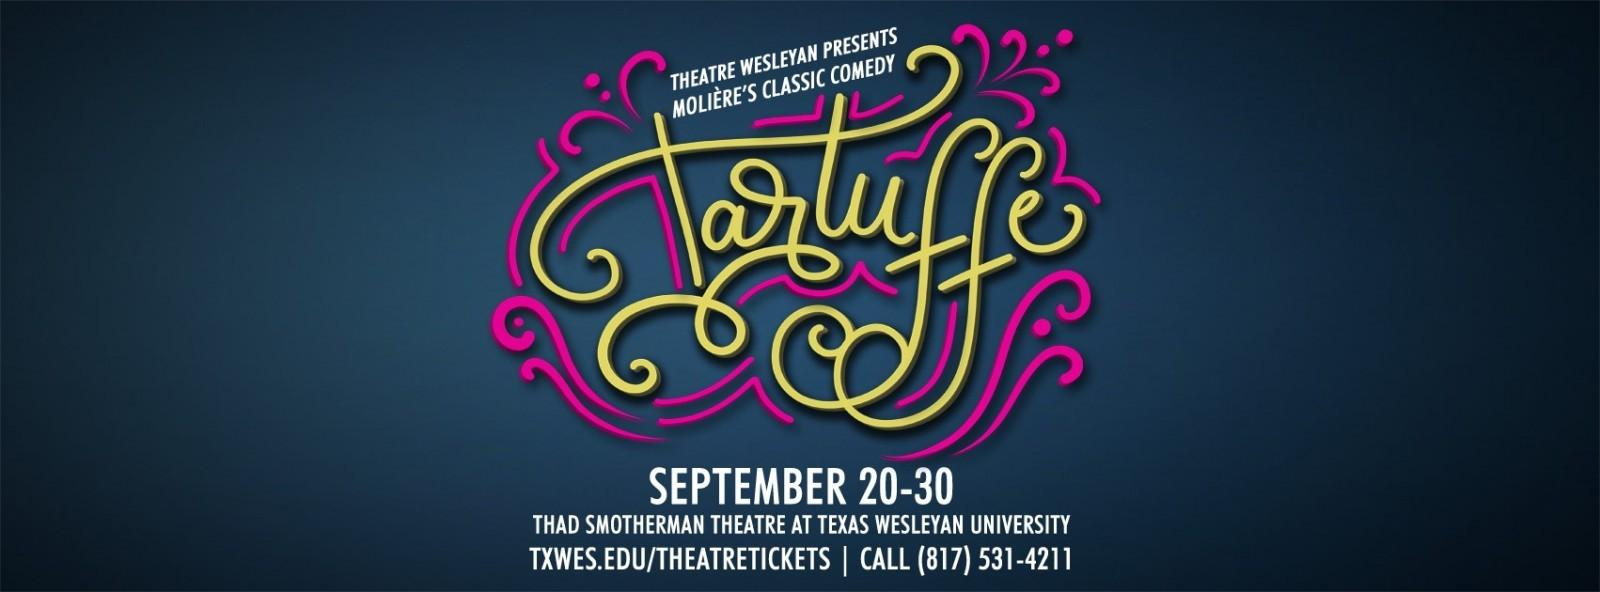 Theatre Wesleyan presents 'Tartuffe'